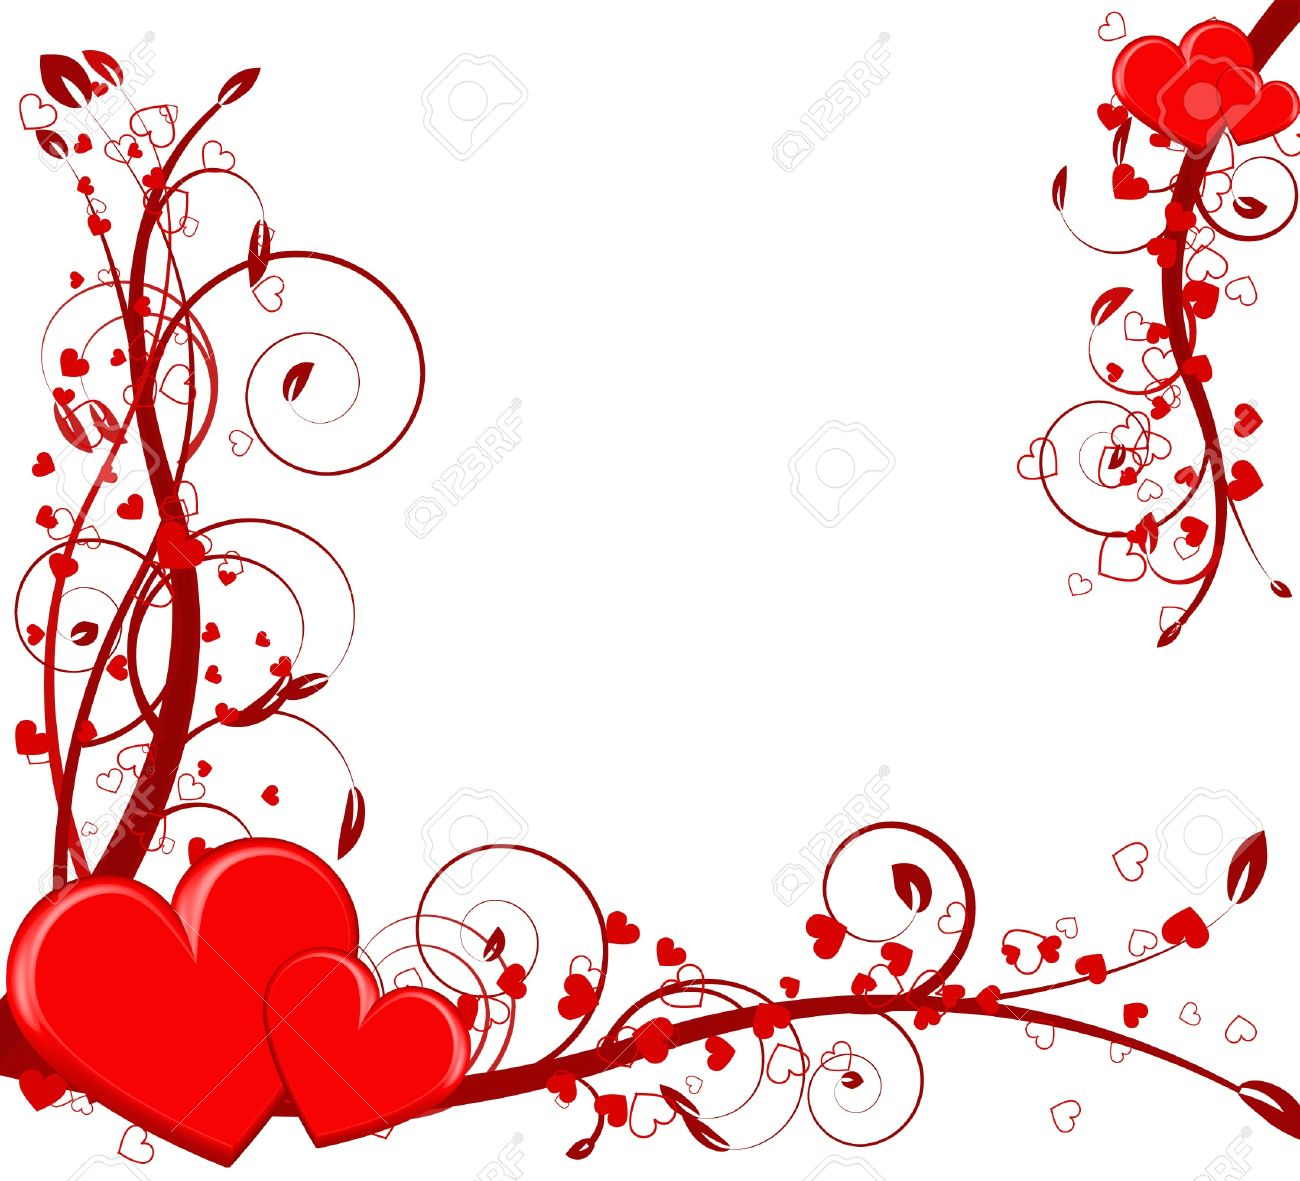 Saint Valentines Day Heart Floral Abstract Background Royalty Free